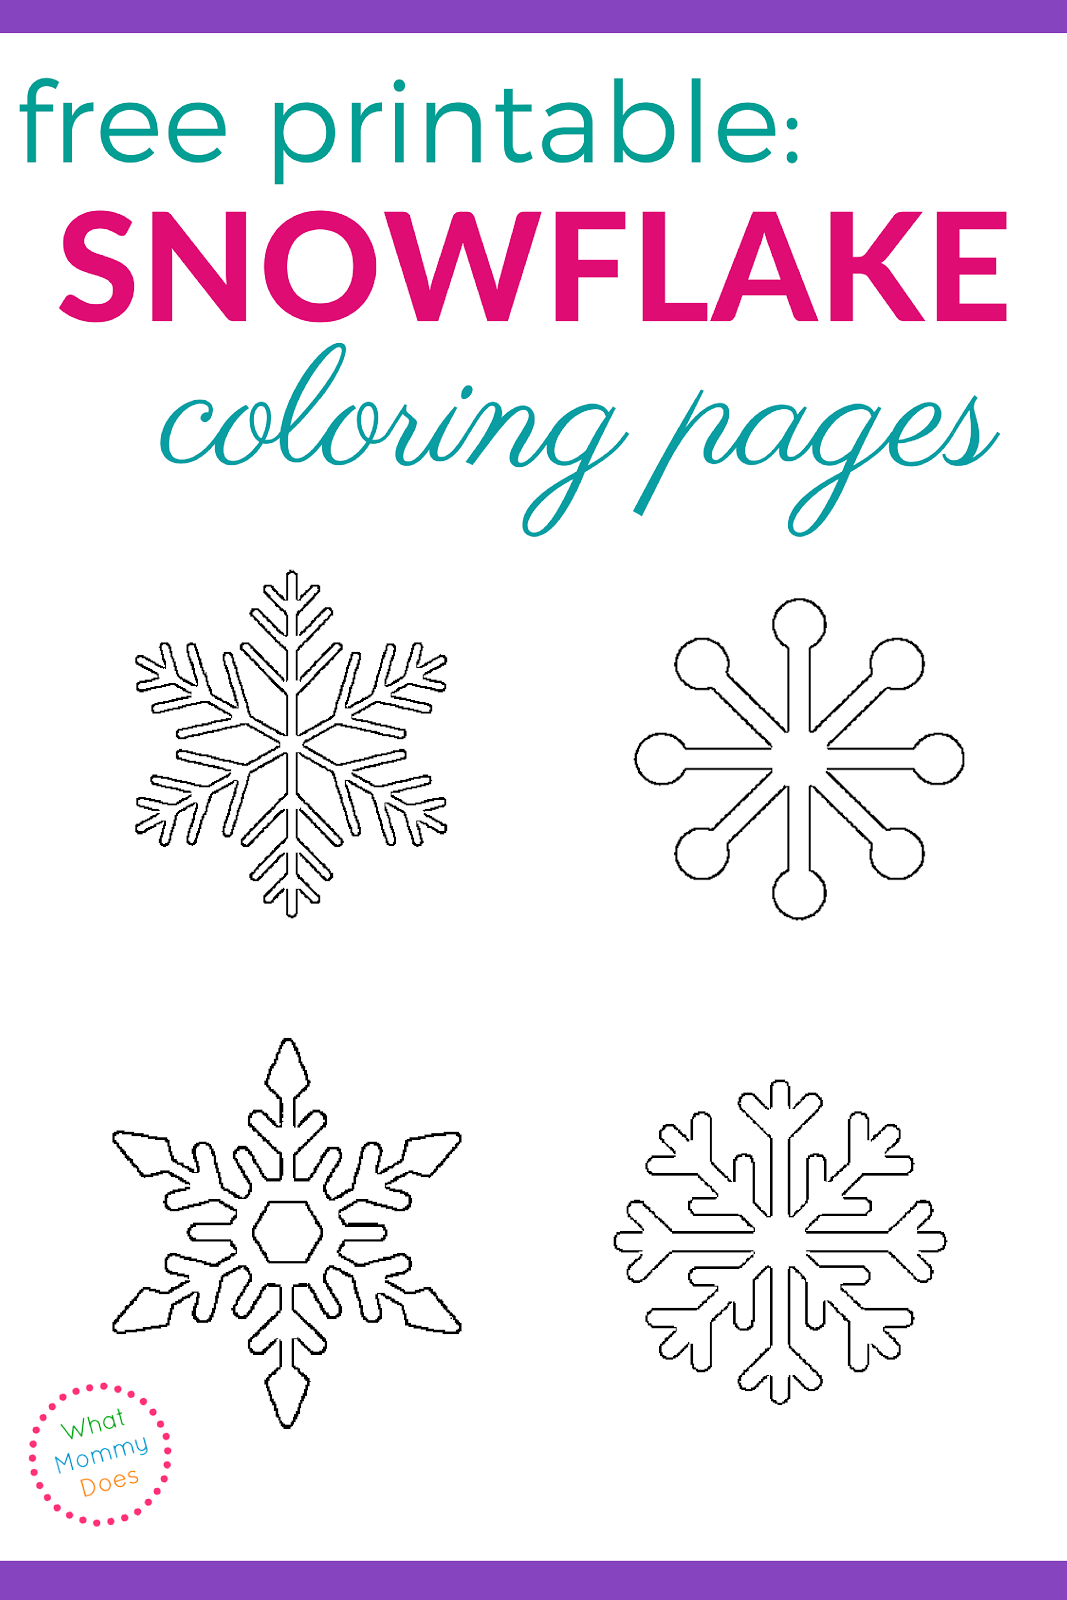 Grab These Free Printable Snowflake Color Pages They Make Great Crafts For Kids In